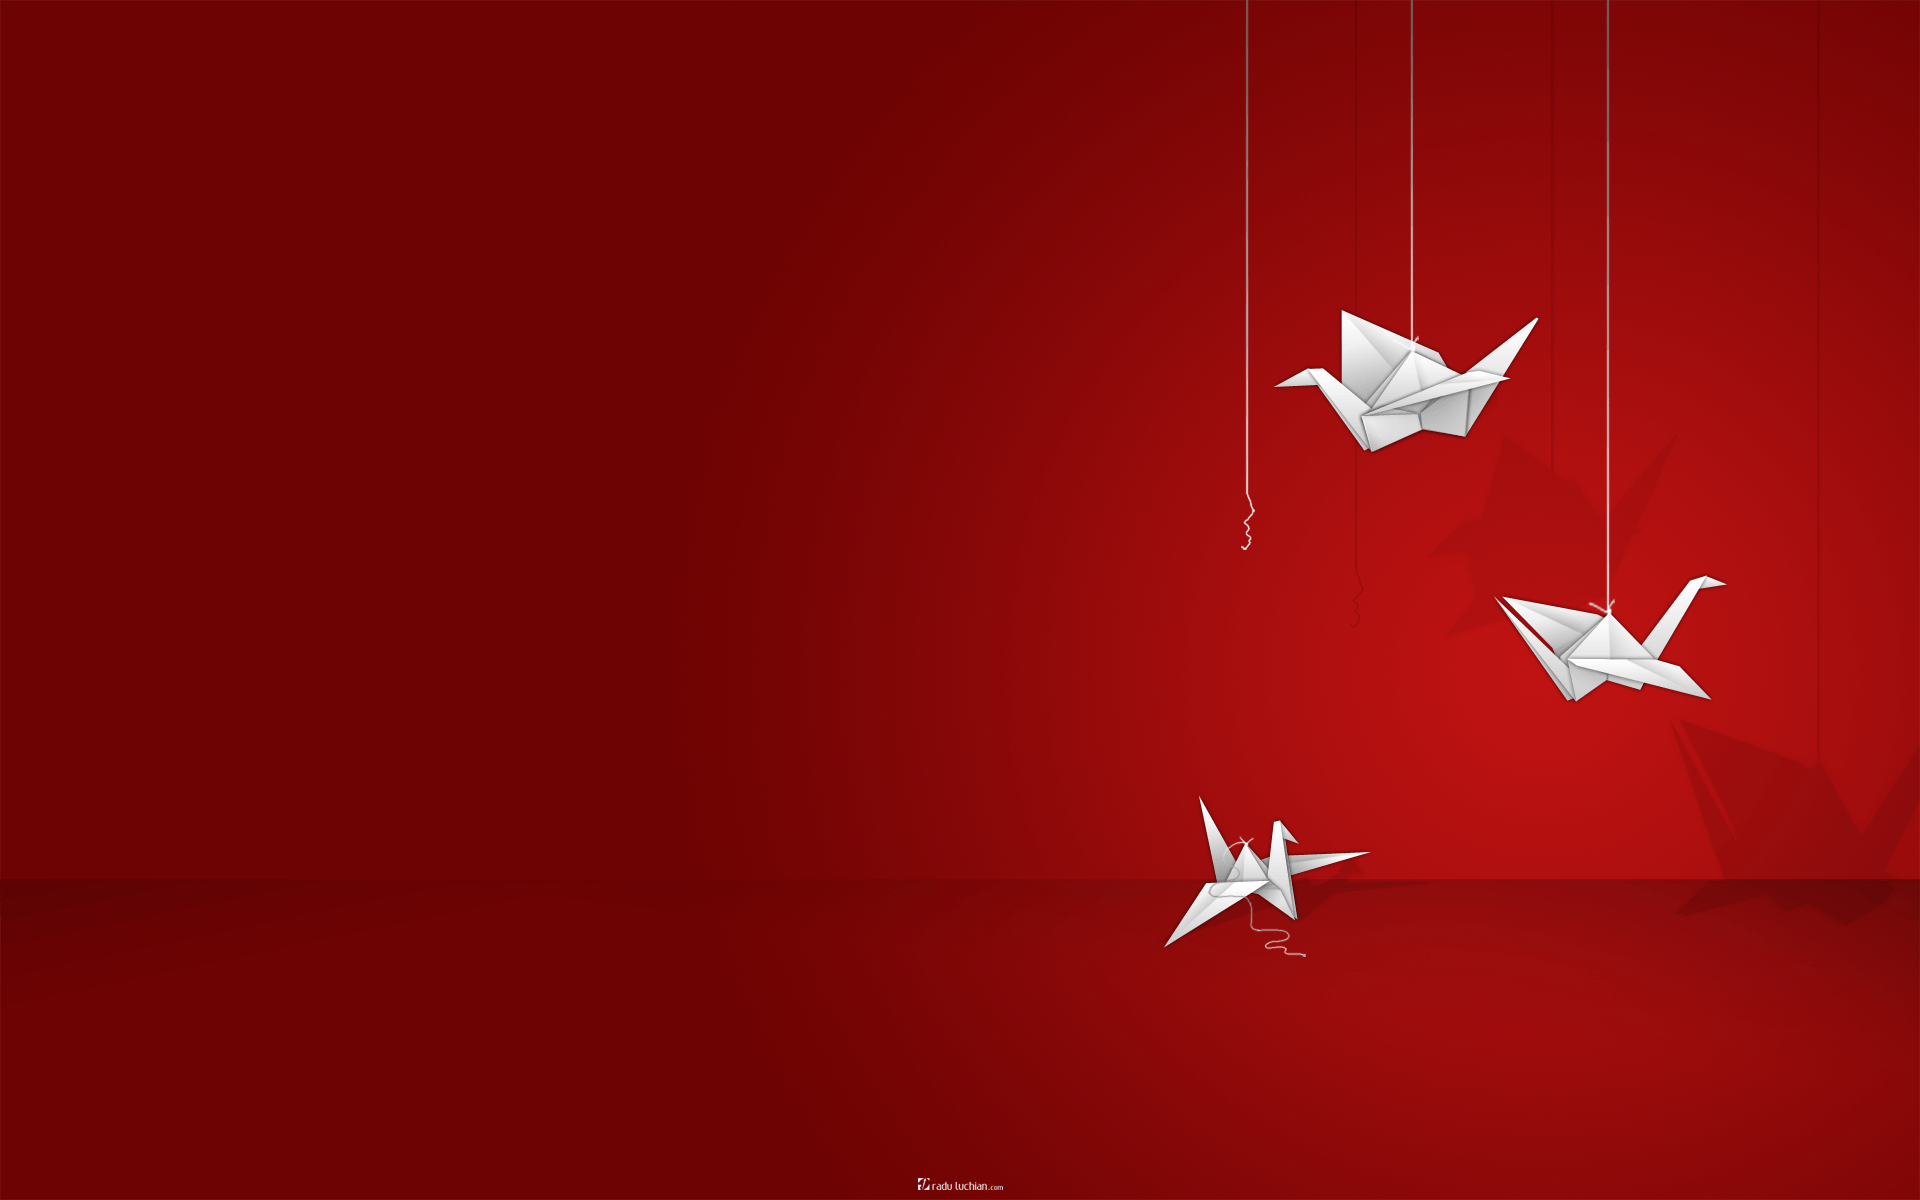 Origami Wallpapers Wallpaper Cave HD Wallpapers Download Free Images Wallpaper [1000image.com]